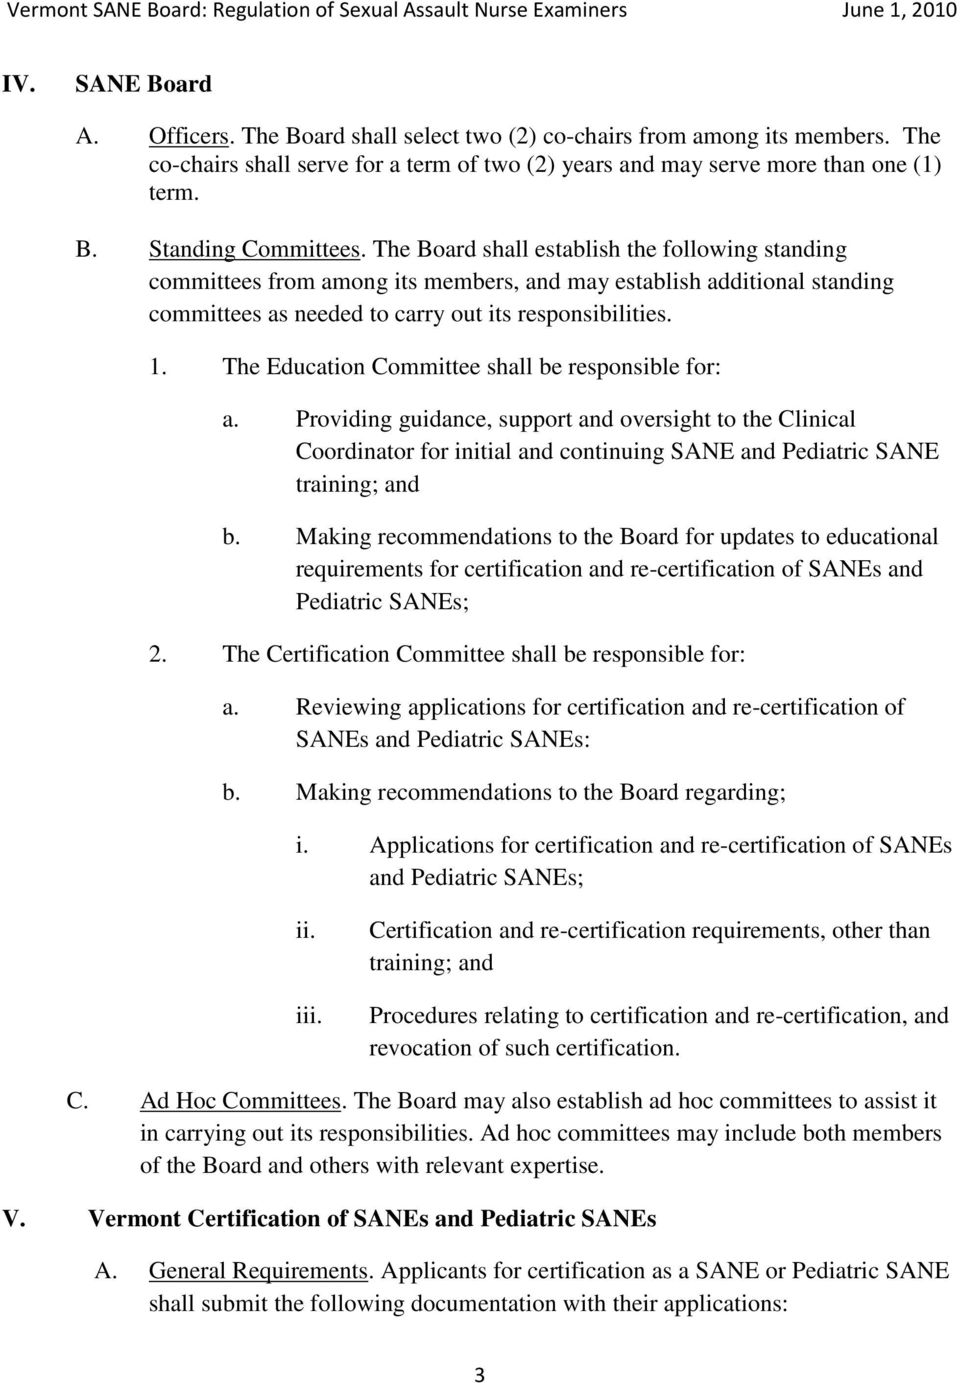 The Education Committee shall be responsible for: a. Providing guidance, support and oversight to the Clinical Coordinator for initial and continuing SANE and Pediatric SANE training; and b.